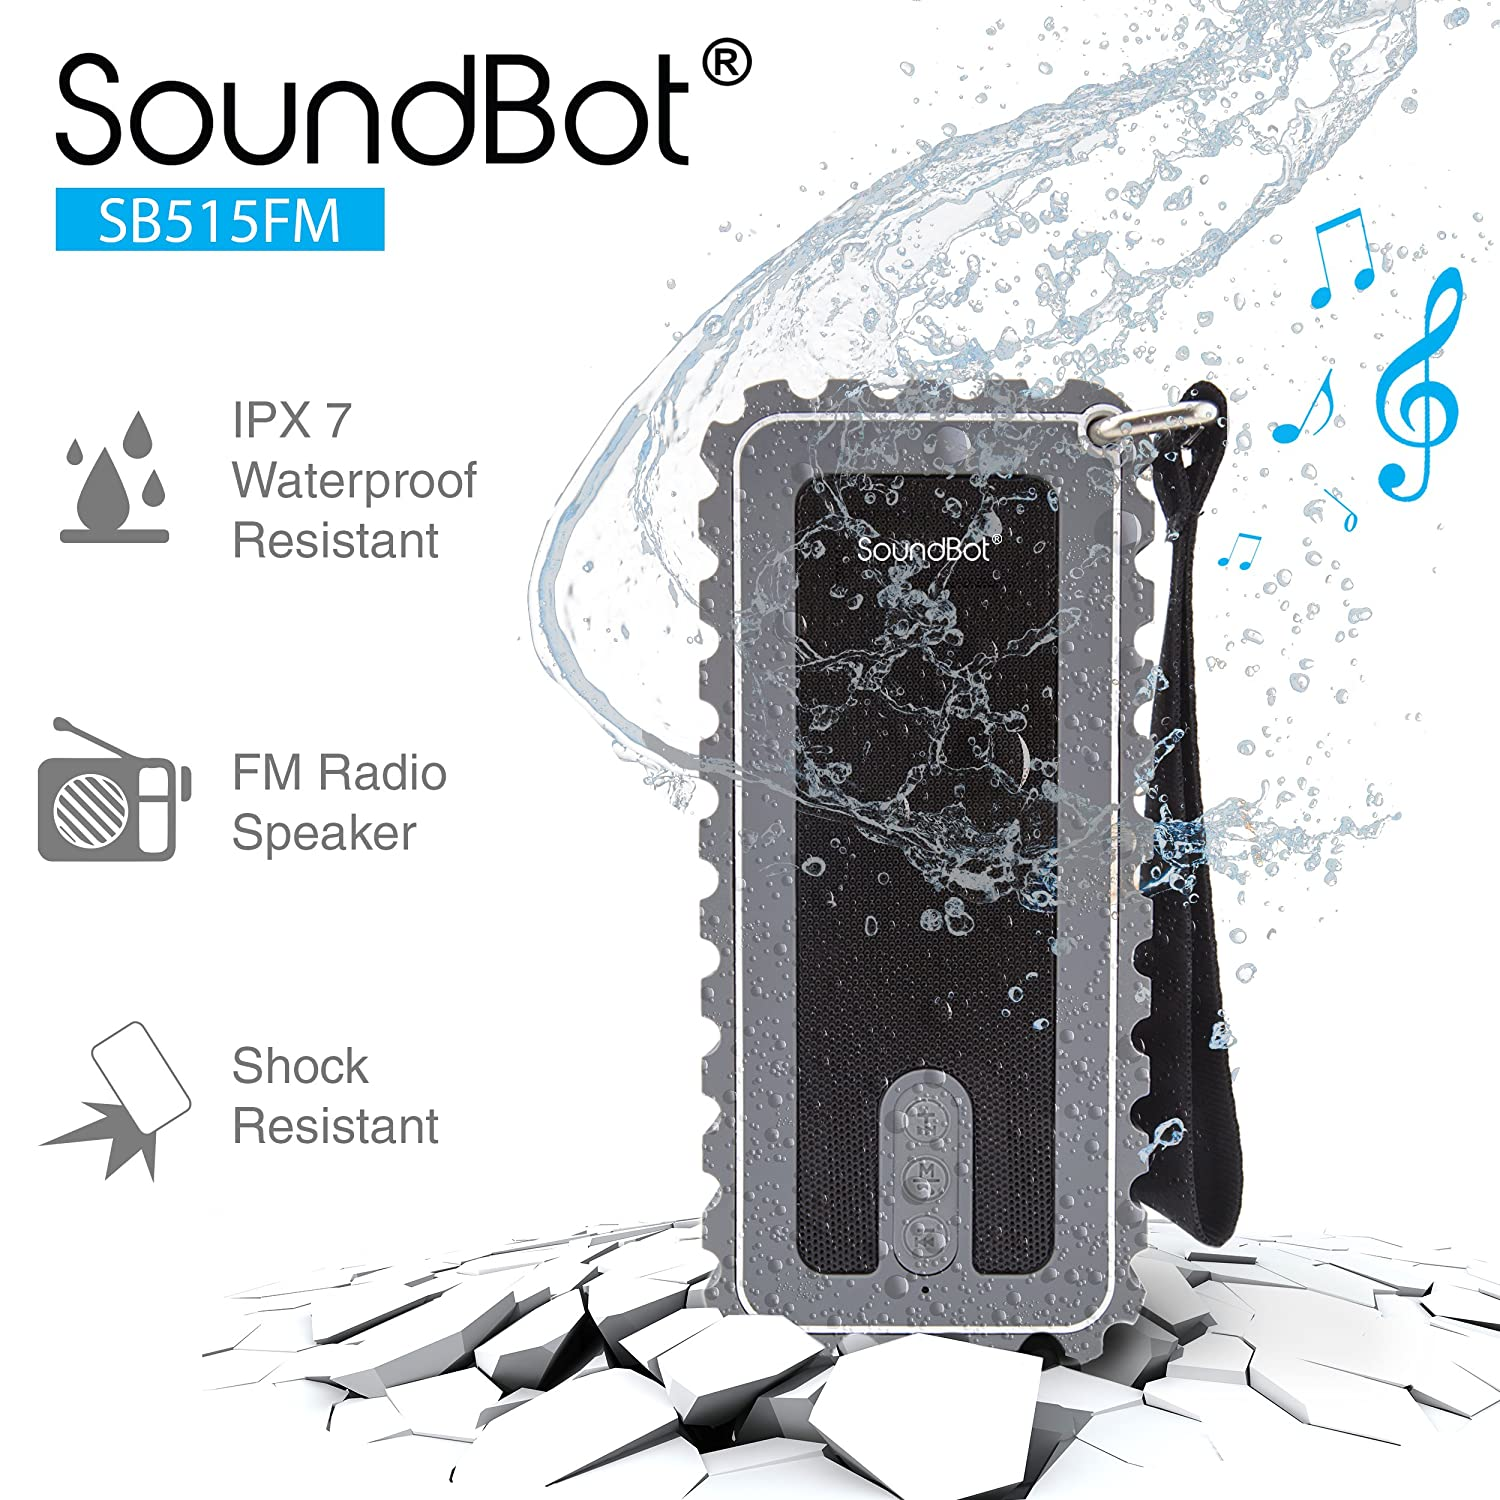 SB515FM Bluetooth Shock Proof Resistant Sound Grey Image 1